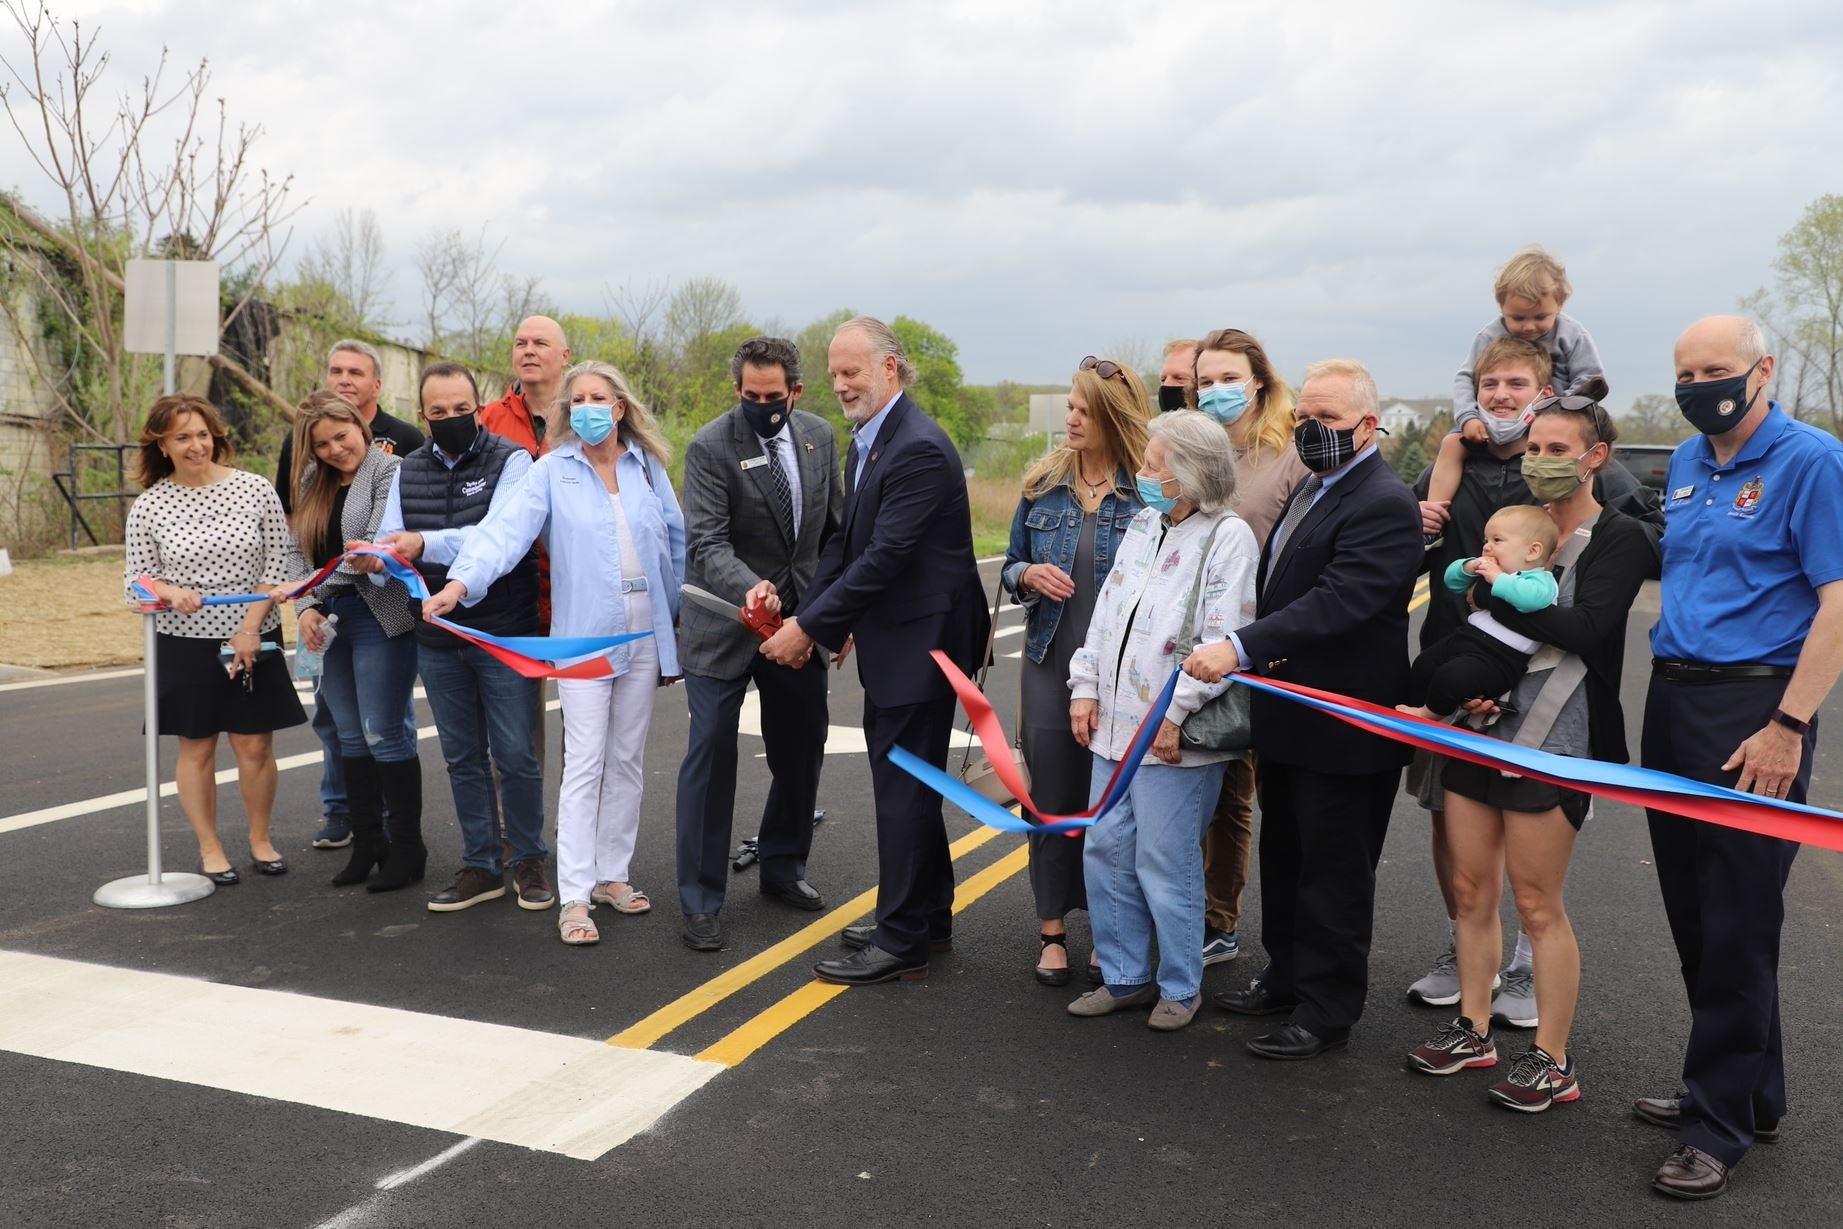 Mayor Chegwidden cut the ribbon to open Chegwidden Way while surrounded by the Morris County Board of County Commissioners, his family and Wharton employees.